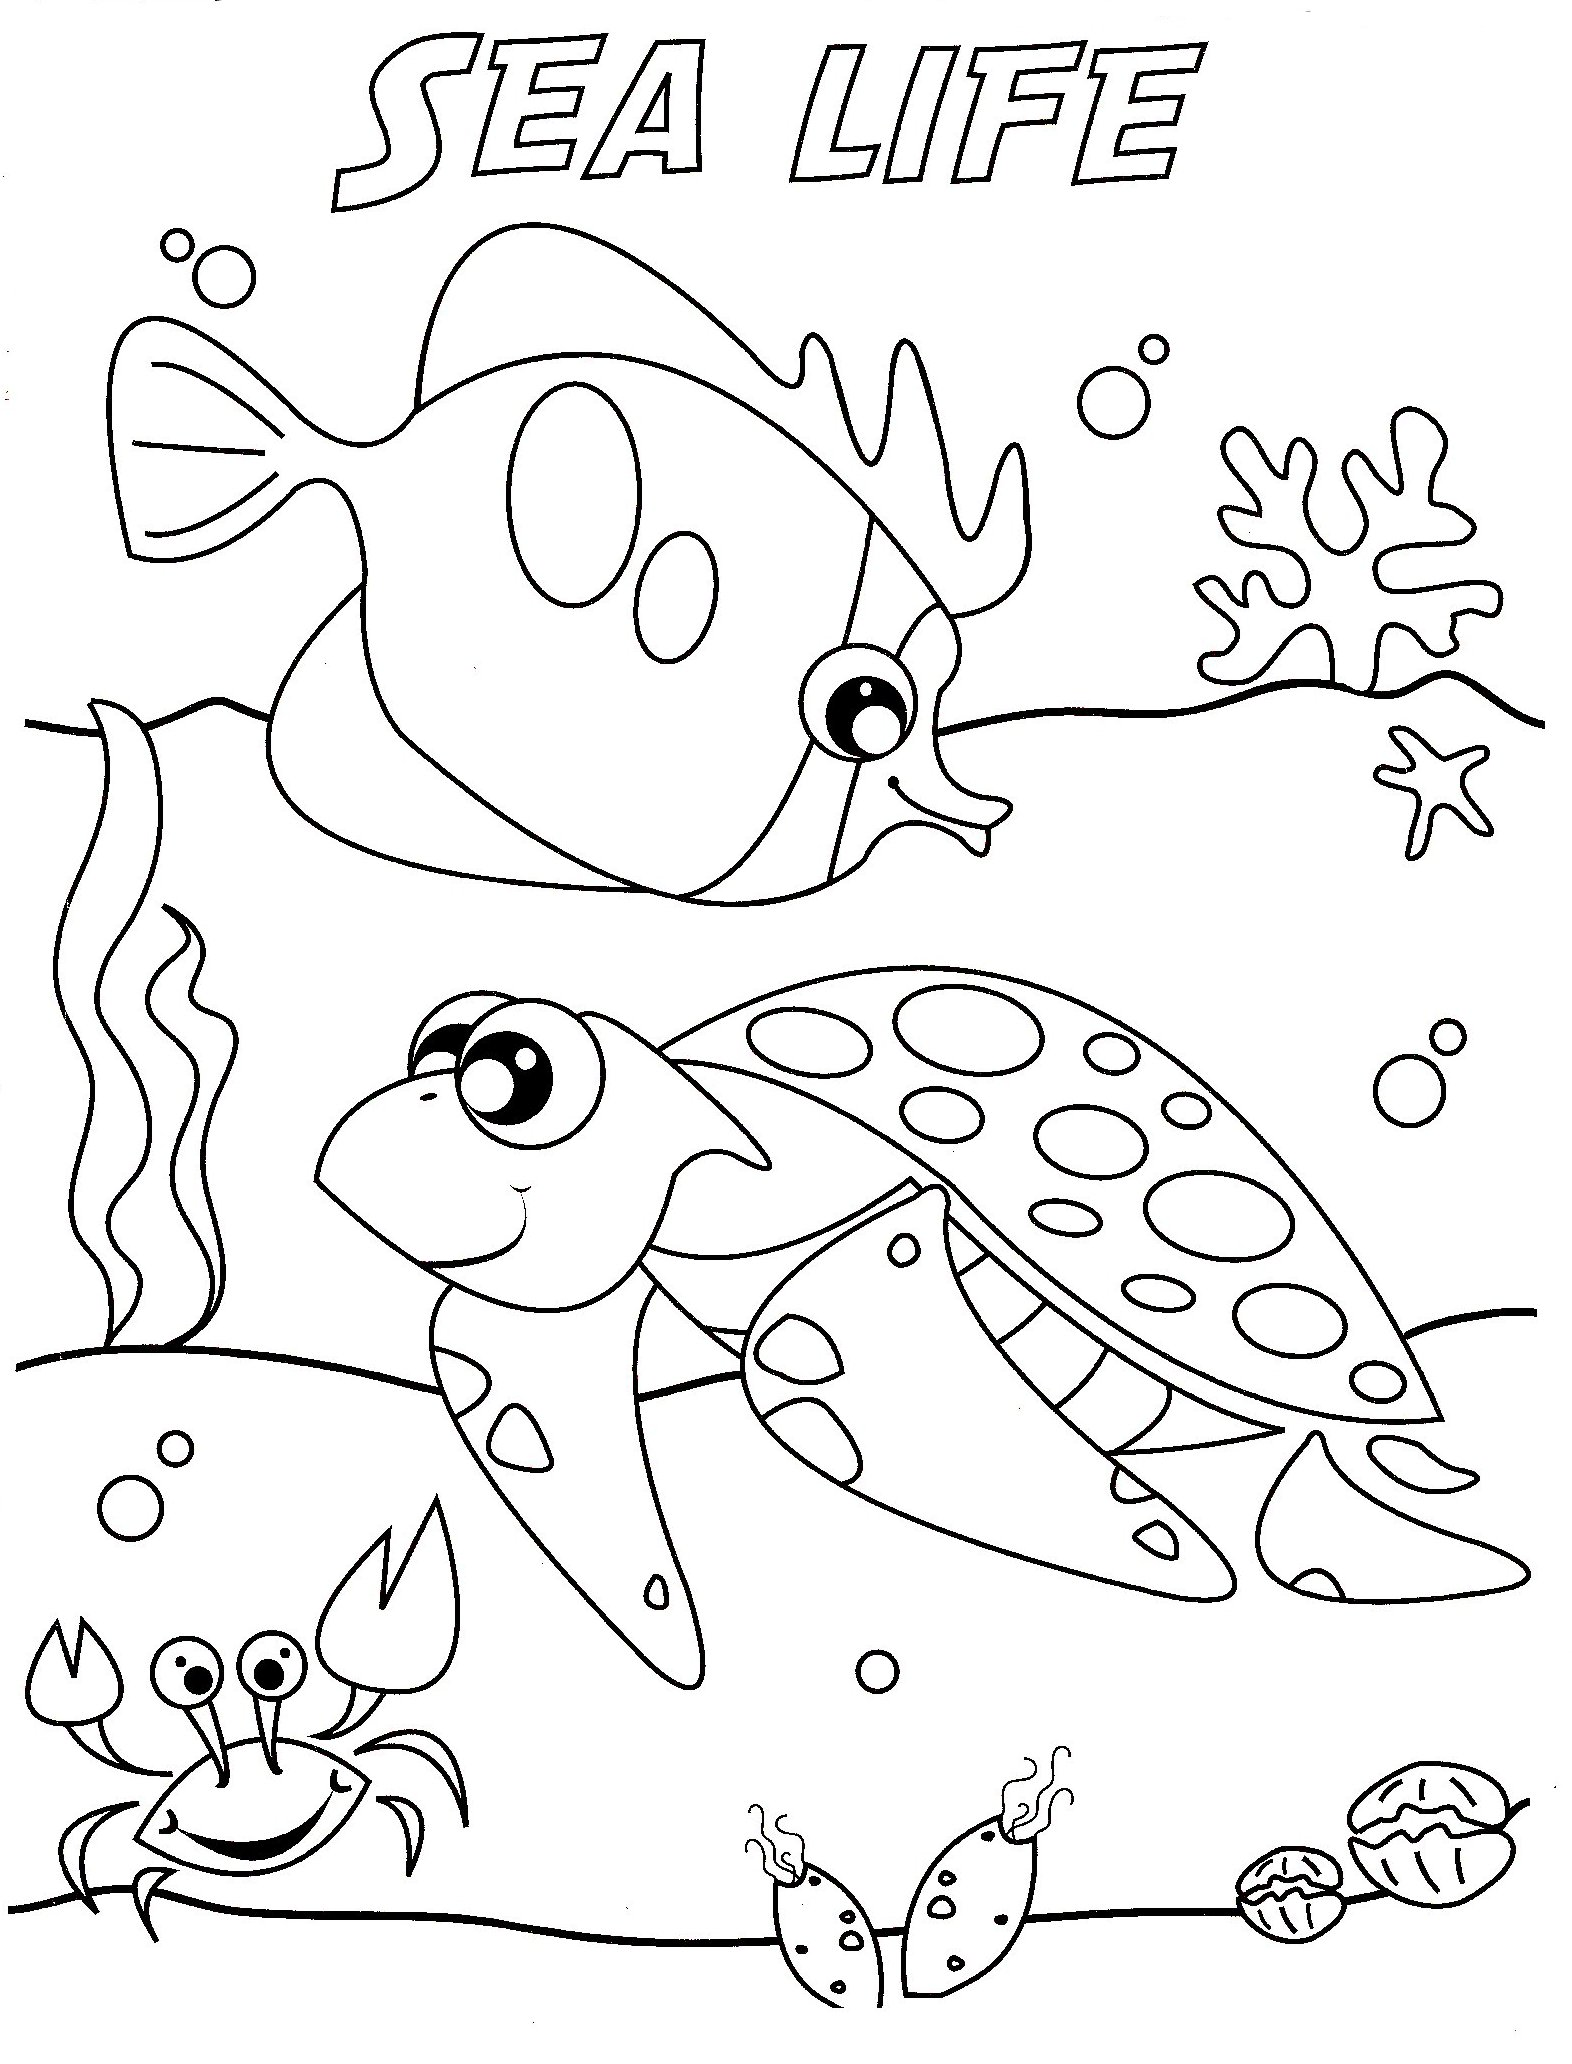 Sea Life Coloring Pages – coloring.rocks!